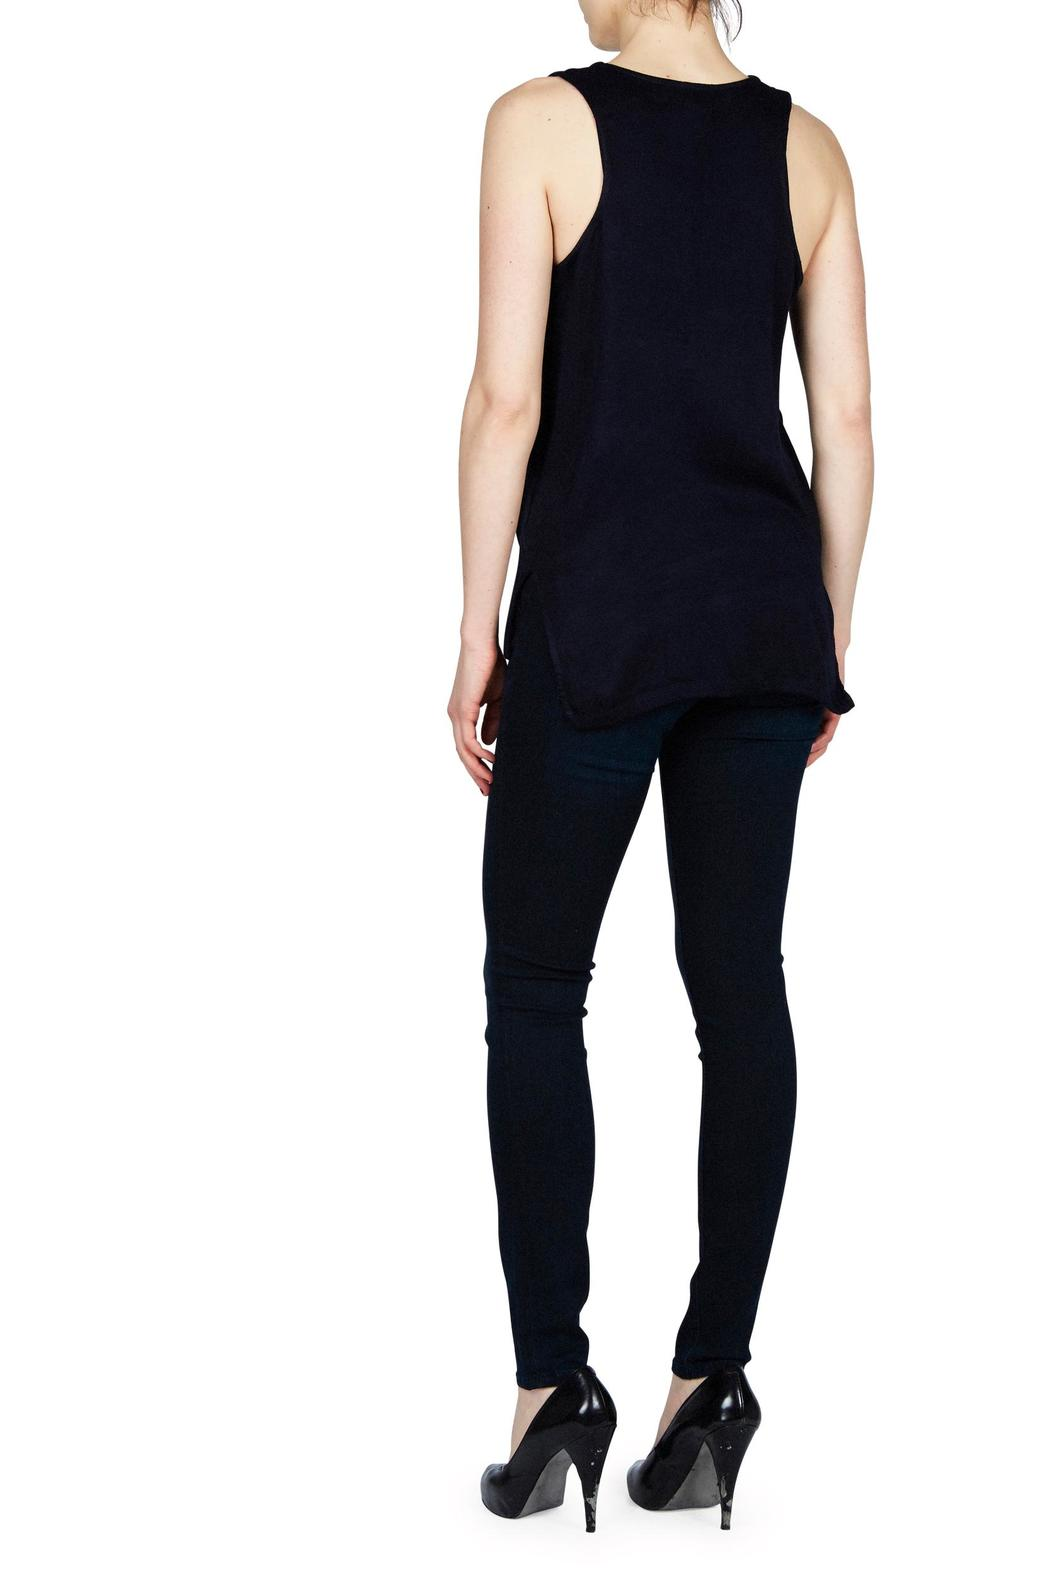 Feel the Piece by Terre Jacobs Peek-A-Boo Top - Front Full Image